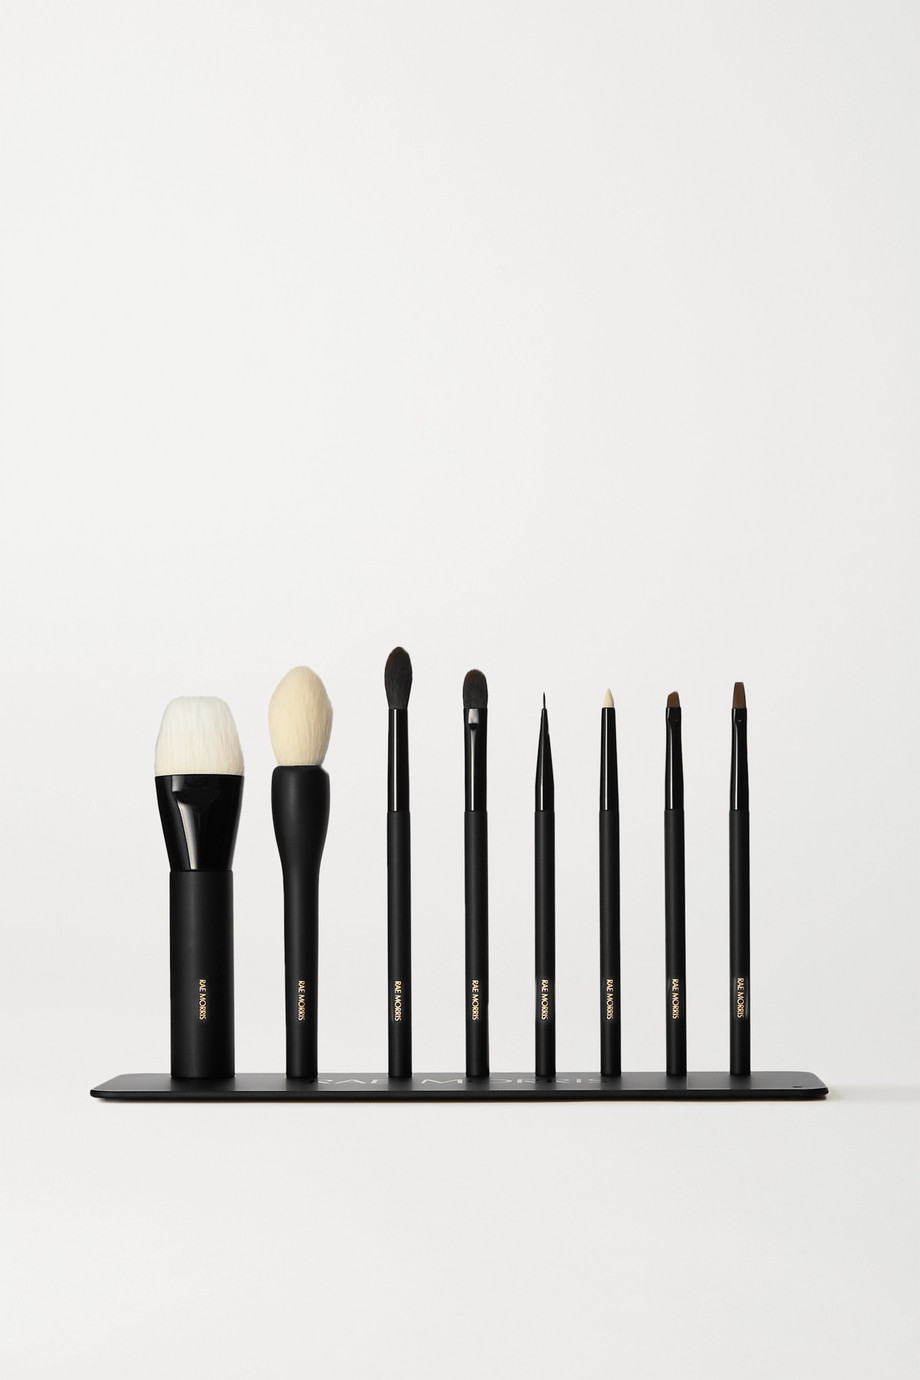 Rae Morris Personal 8 Brush Set and Plate – Set aus 8 Pinseln und Halter